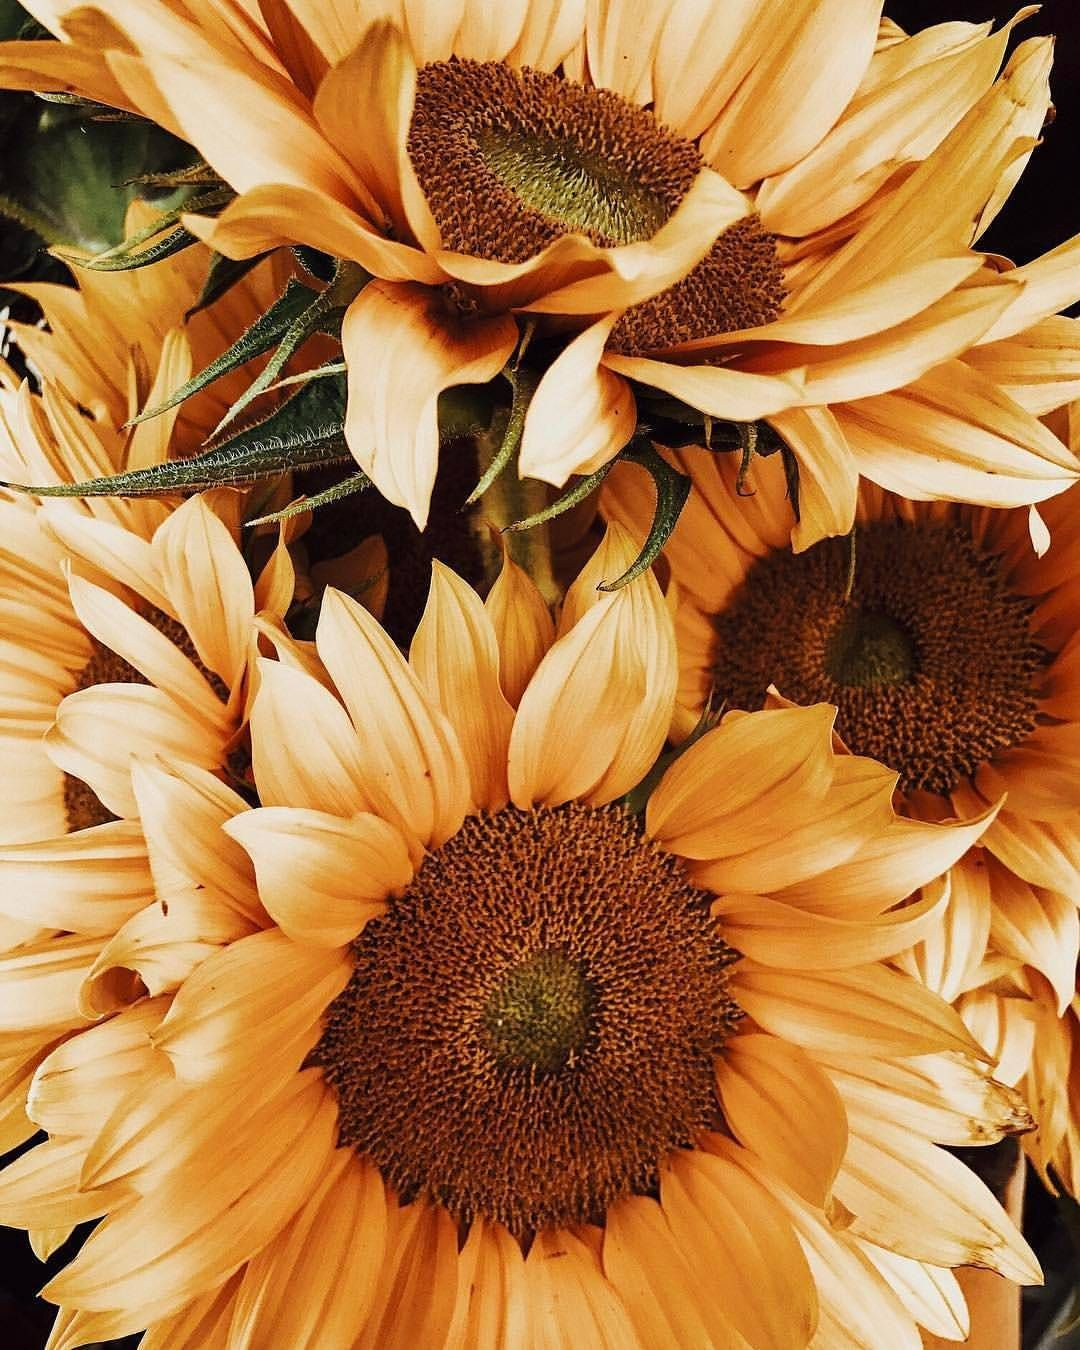 Pin by mna on flwers pinterest sunflowers flowers